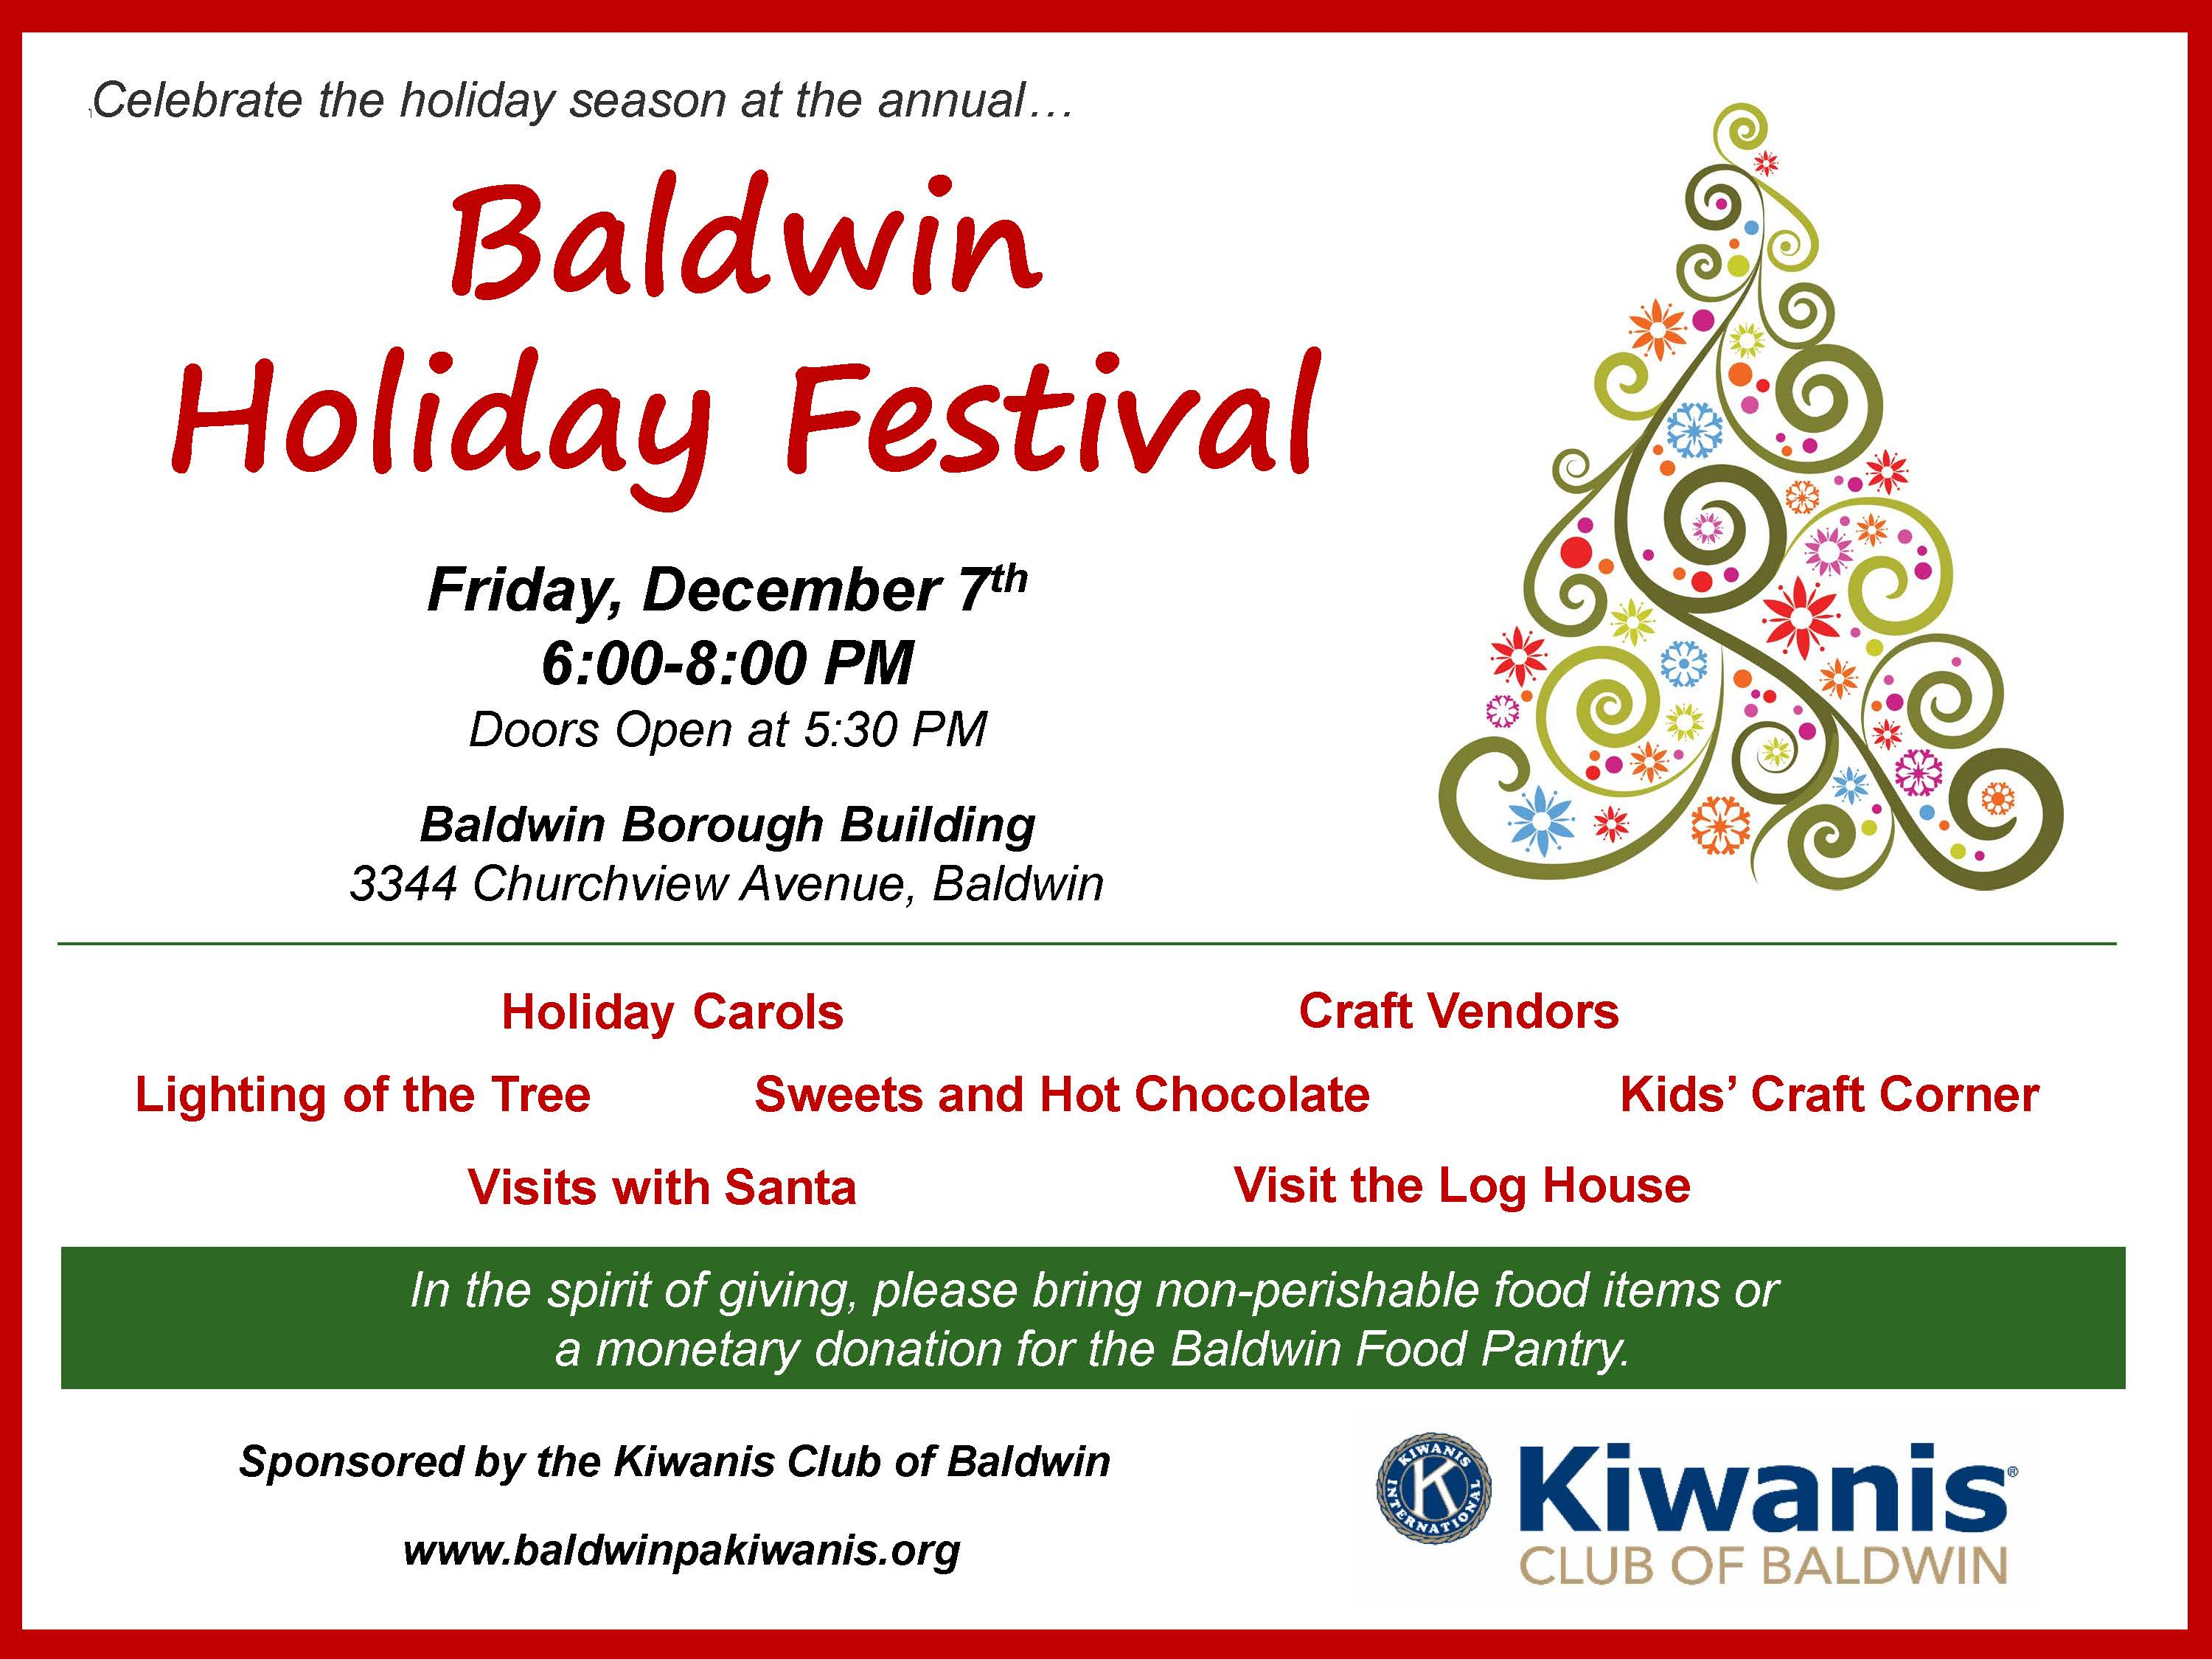 Baldwin Holiday Festival 2018